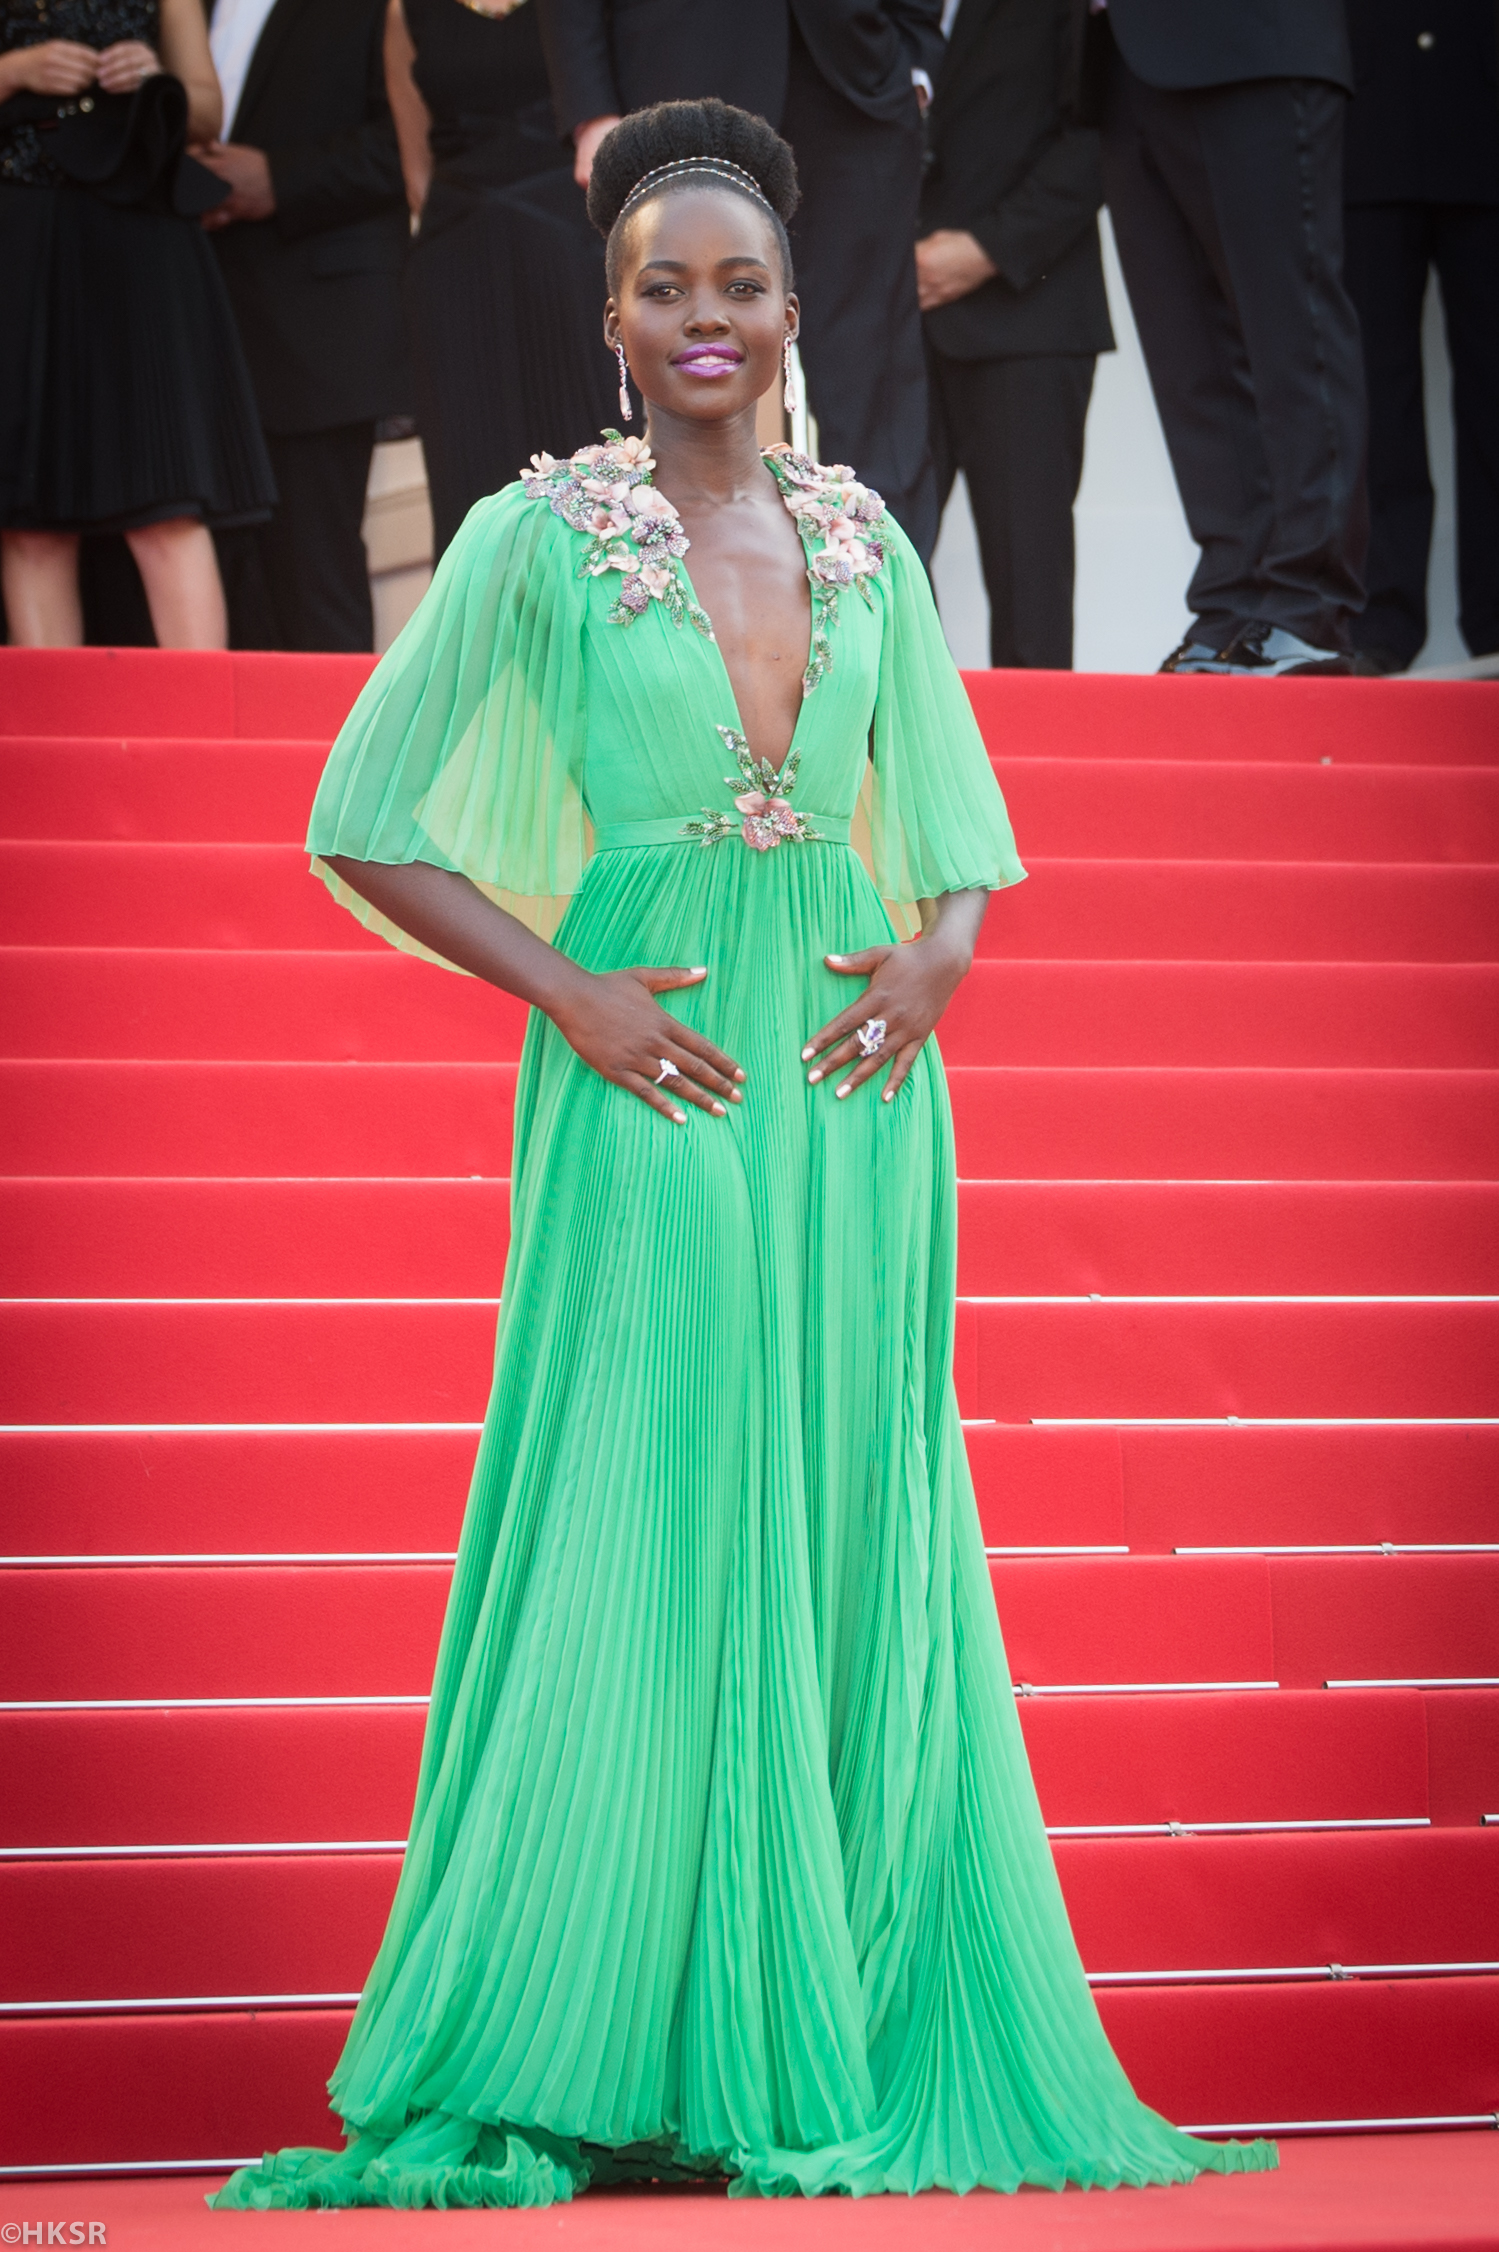 Lupita Nyong'o took the red carpet by storm in a green  Gucci gown at  Cannes 2015